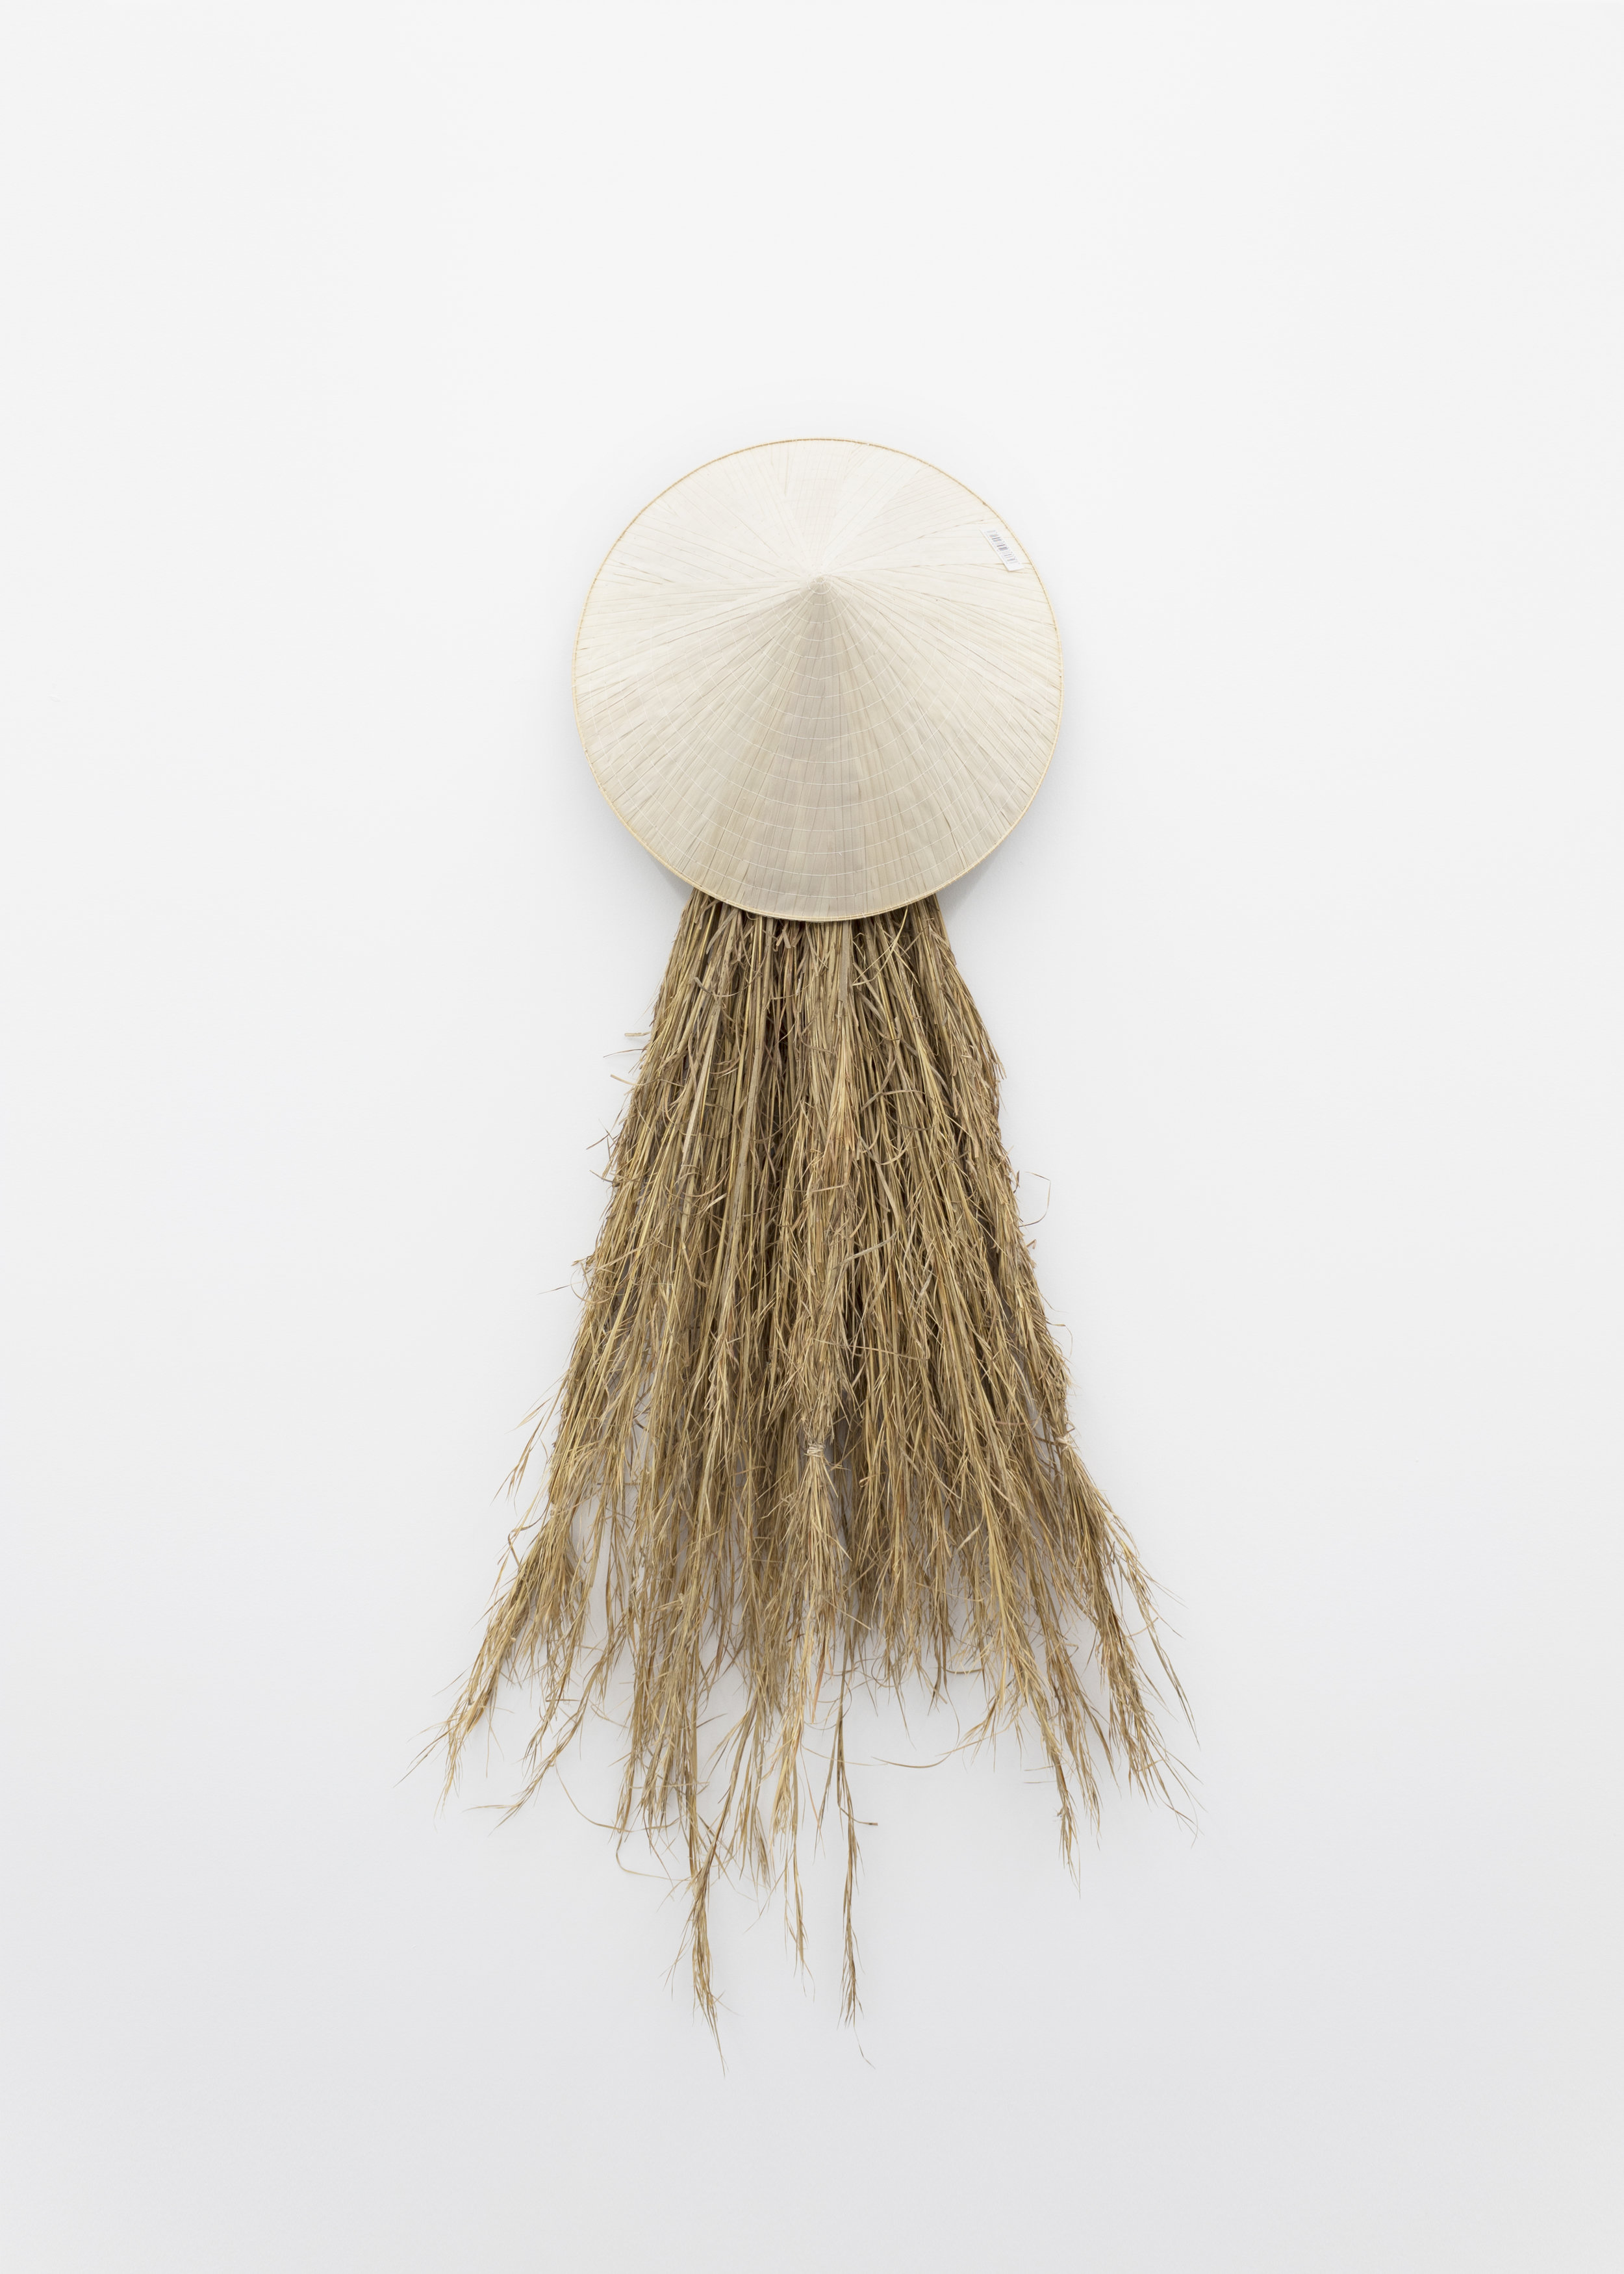 Millian Giang Lien Pham,  Preforge: 9 Stages (Five) , 2019. Grass, conical hat